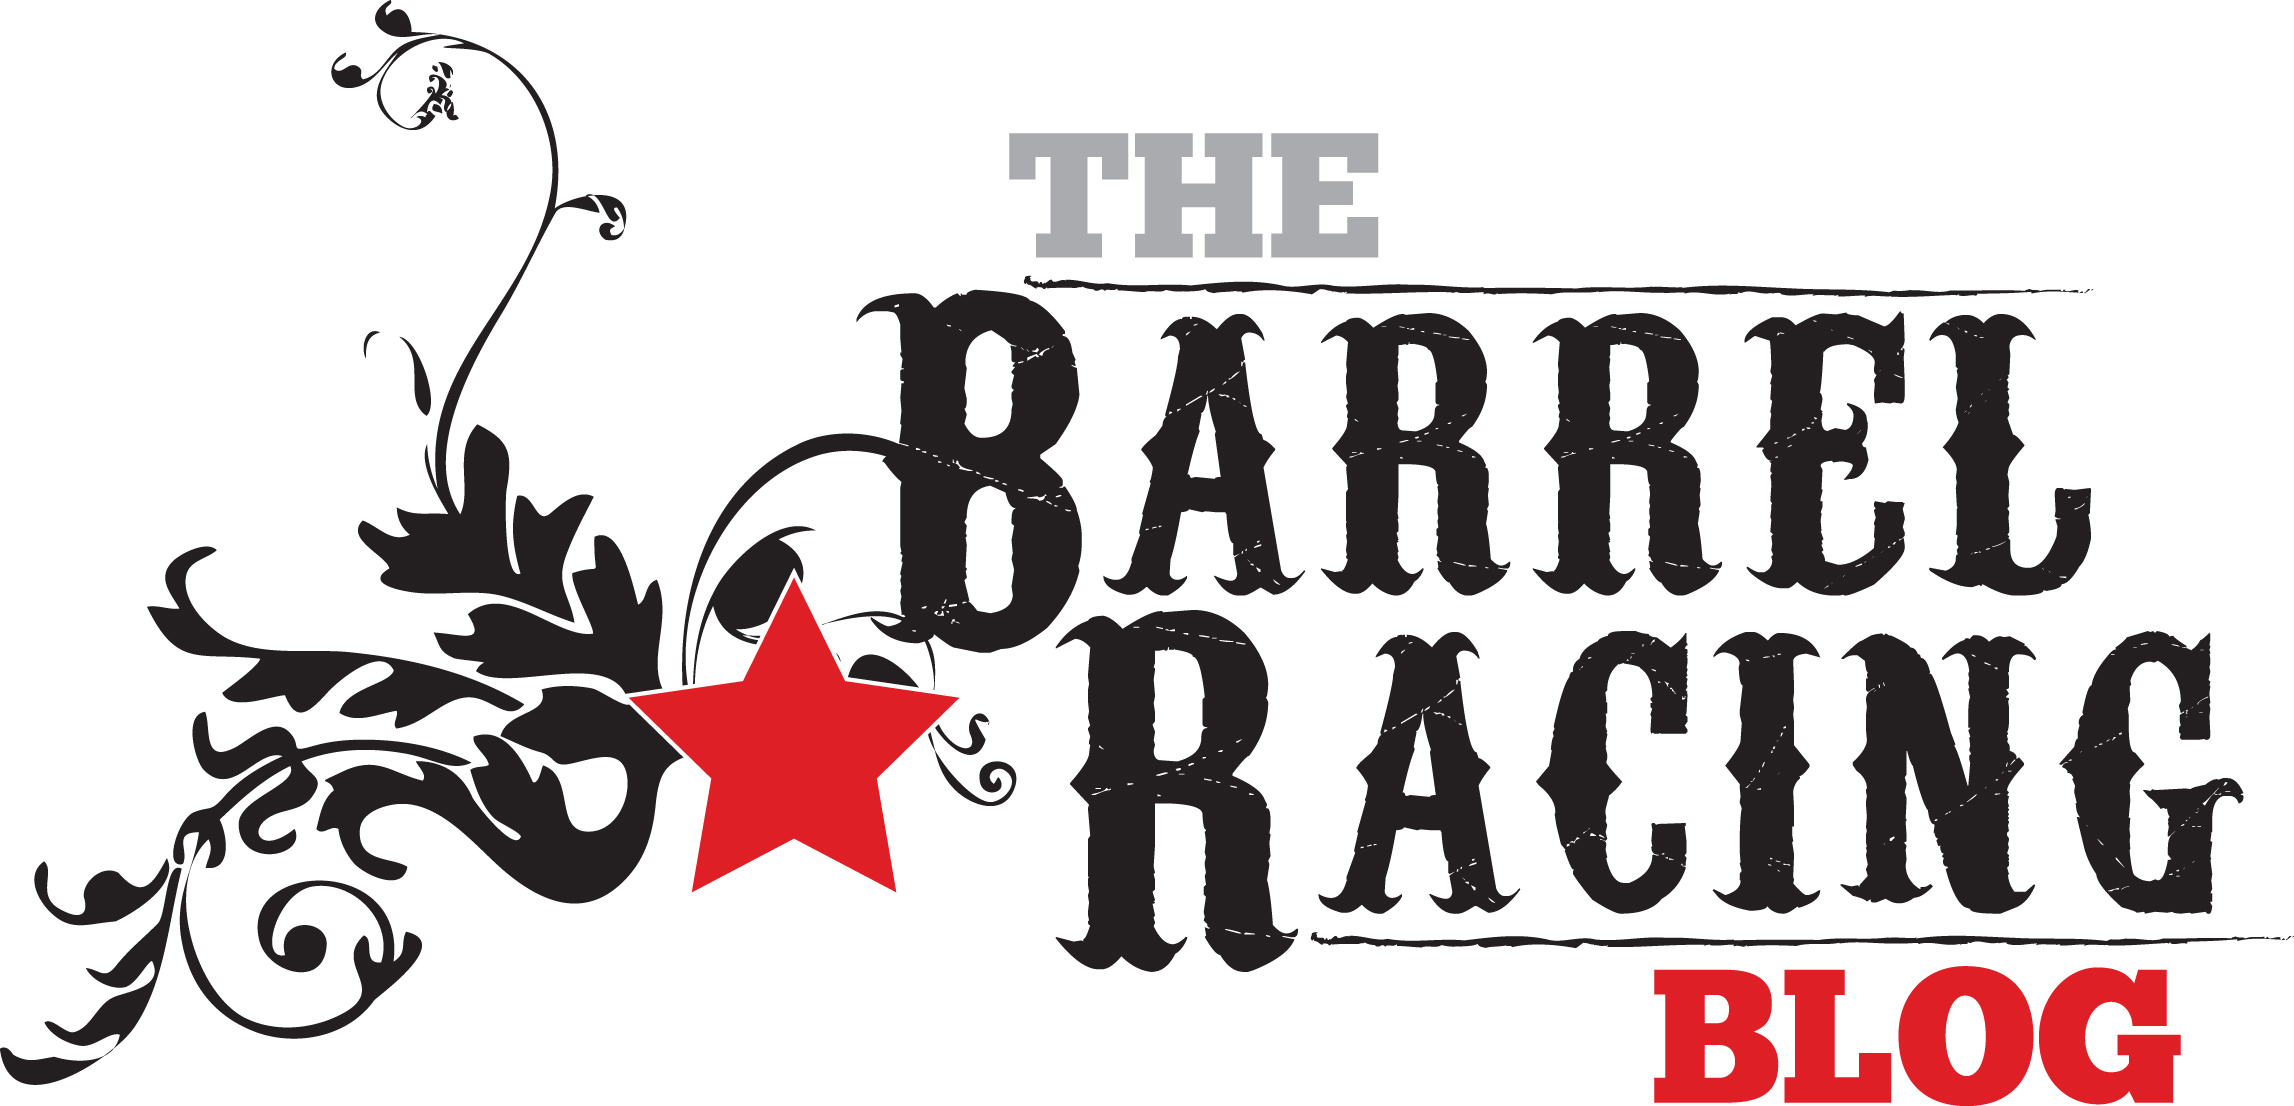 best of the best in ohio barrel race from on the road with dawn rh womentalksports com barrel racing logo images Barrel Racing Horses